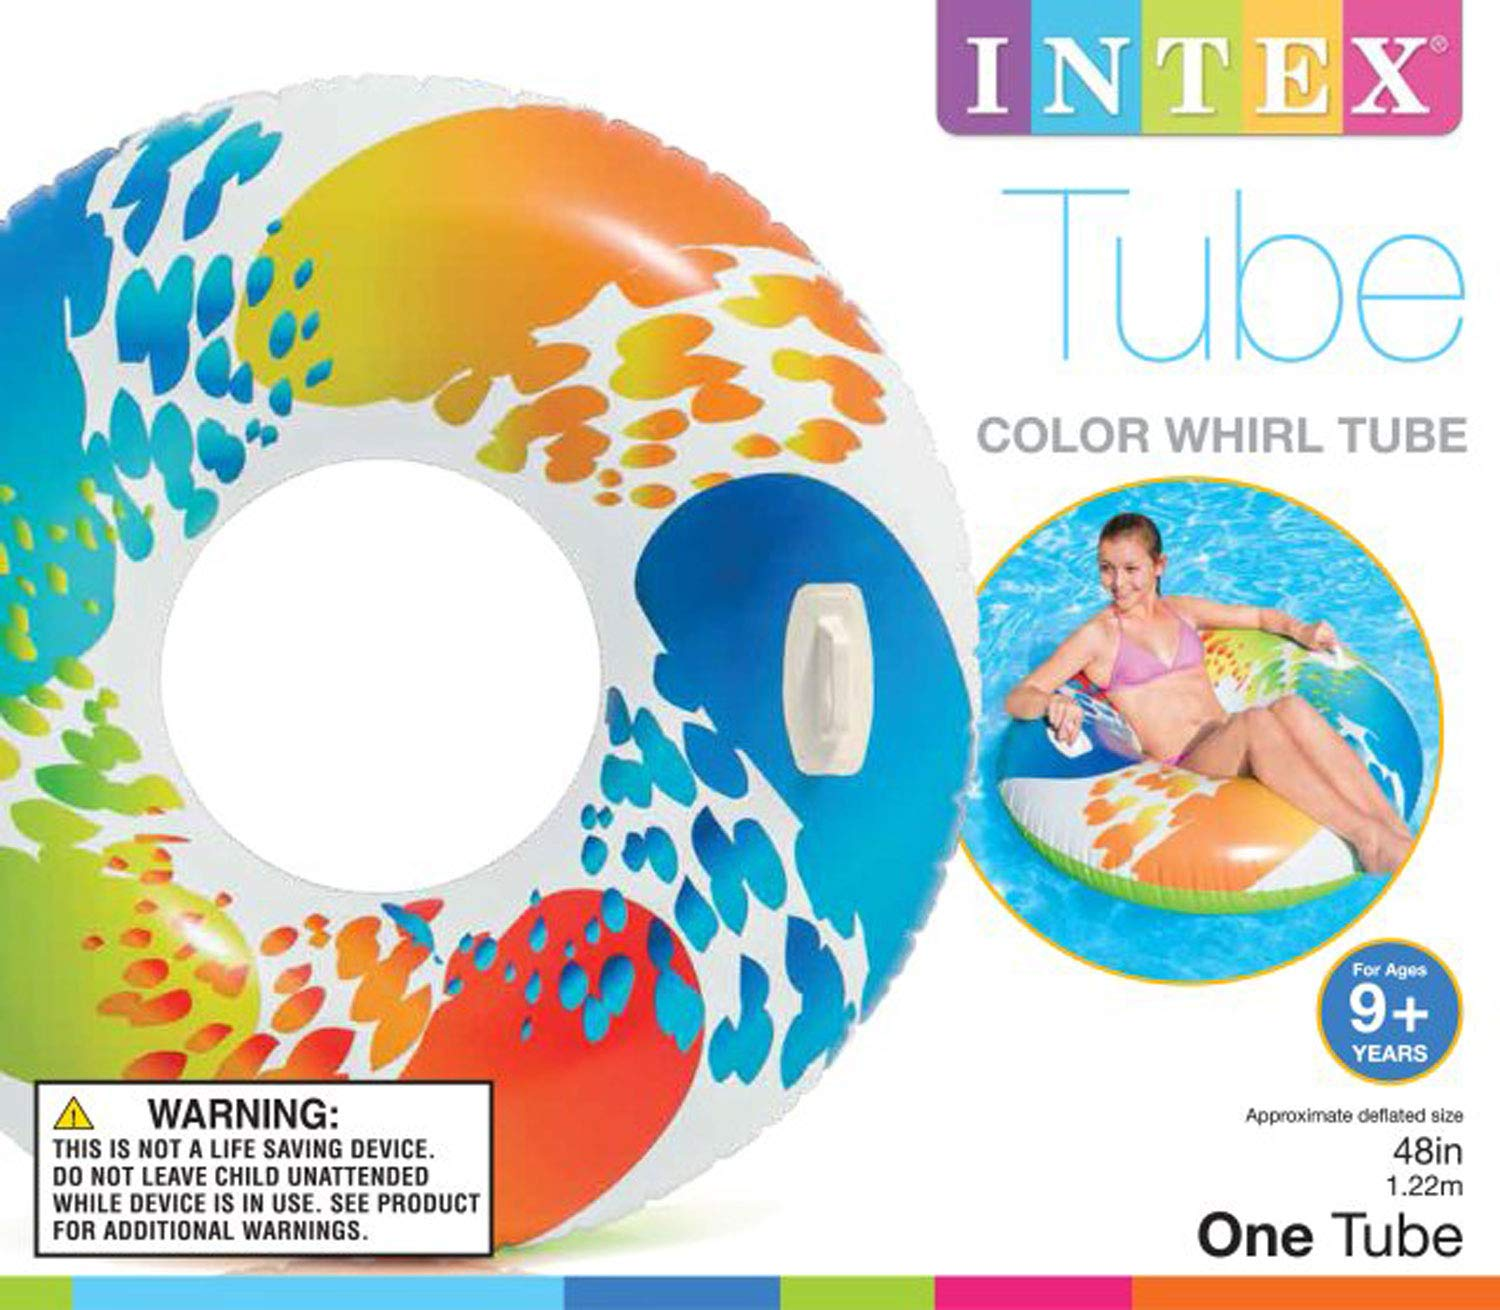 Intex Inflatable 47'' Color Whirl Tube Swimming Pool Raft with Handles (8 Pack) by Intex (Image #5)